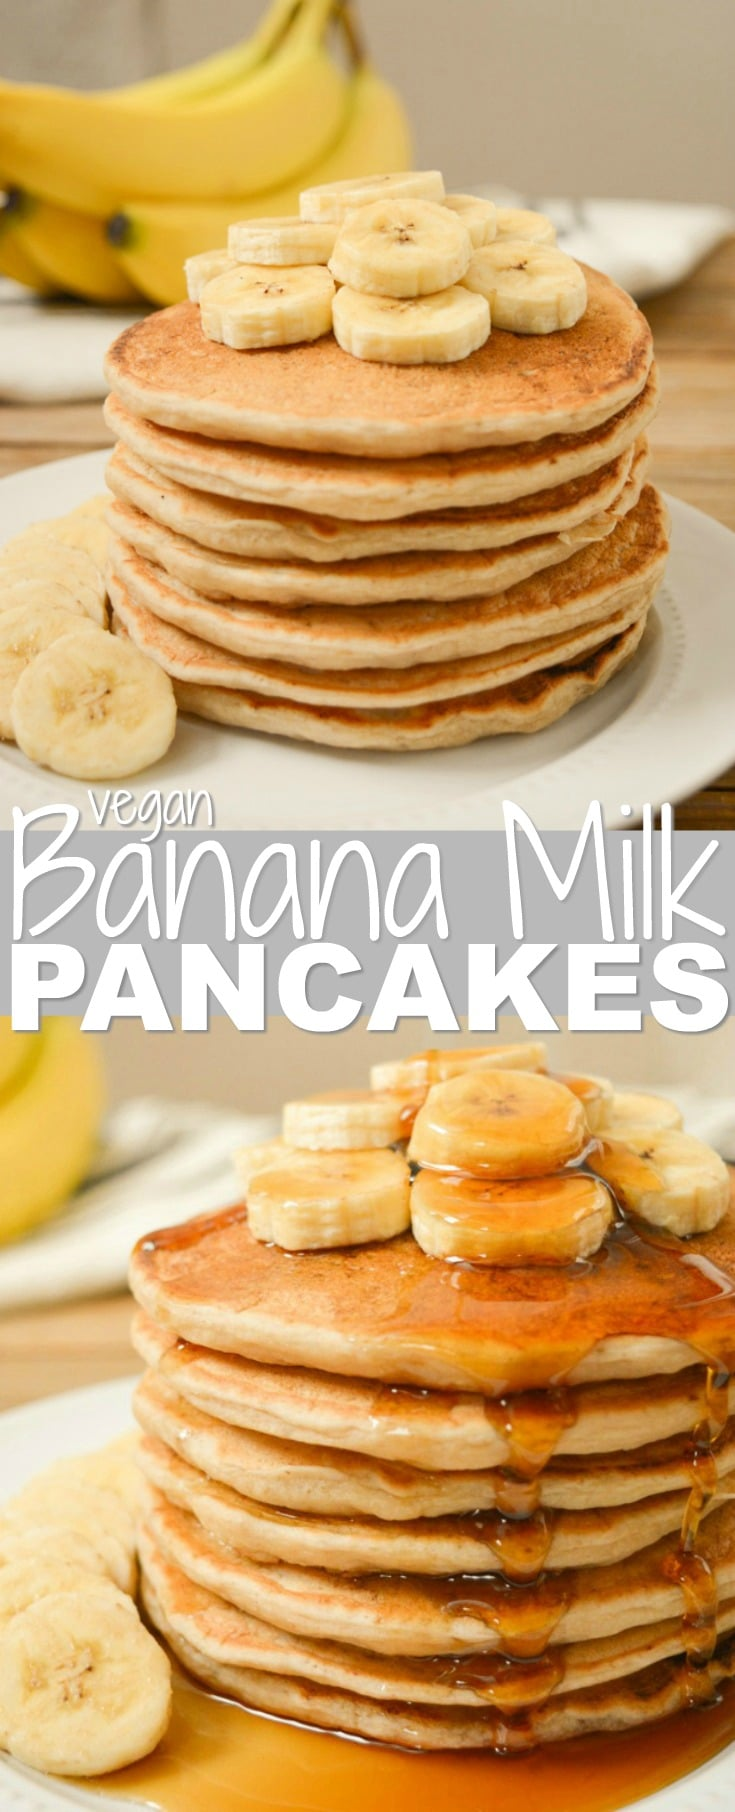 Vegan Banana Milk Pancakes are an allergy-friendly, egg-free, dairy-free and nut-free breakfast!  Sweet, ripe bananas and coconut sugar keep these pancakes refined-sugar-free as well!  Top your banana-filled pancake stack with extra banana slices and a good covering of maple syrup for an easy weekend brunch!